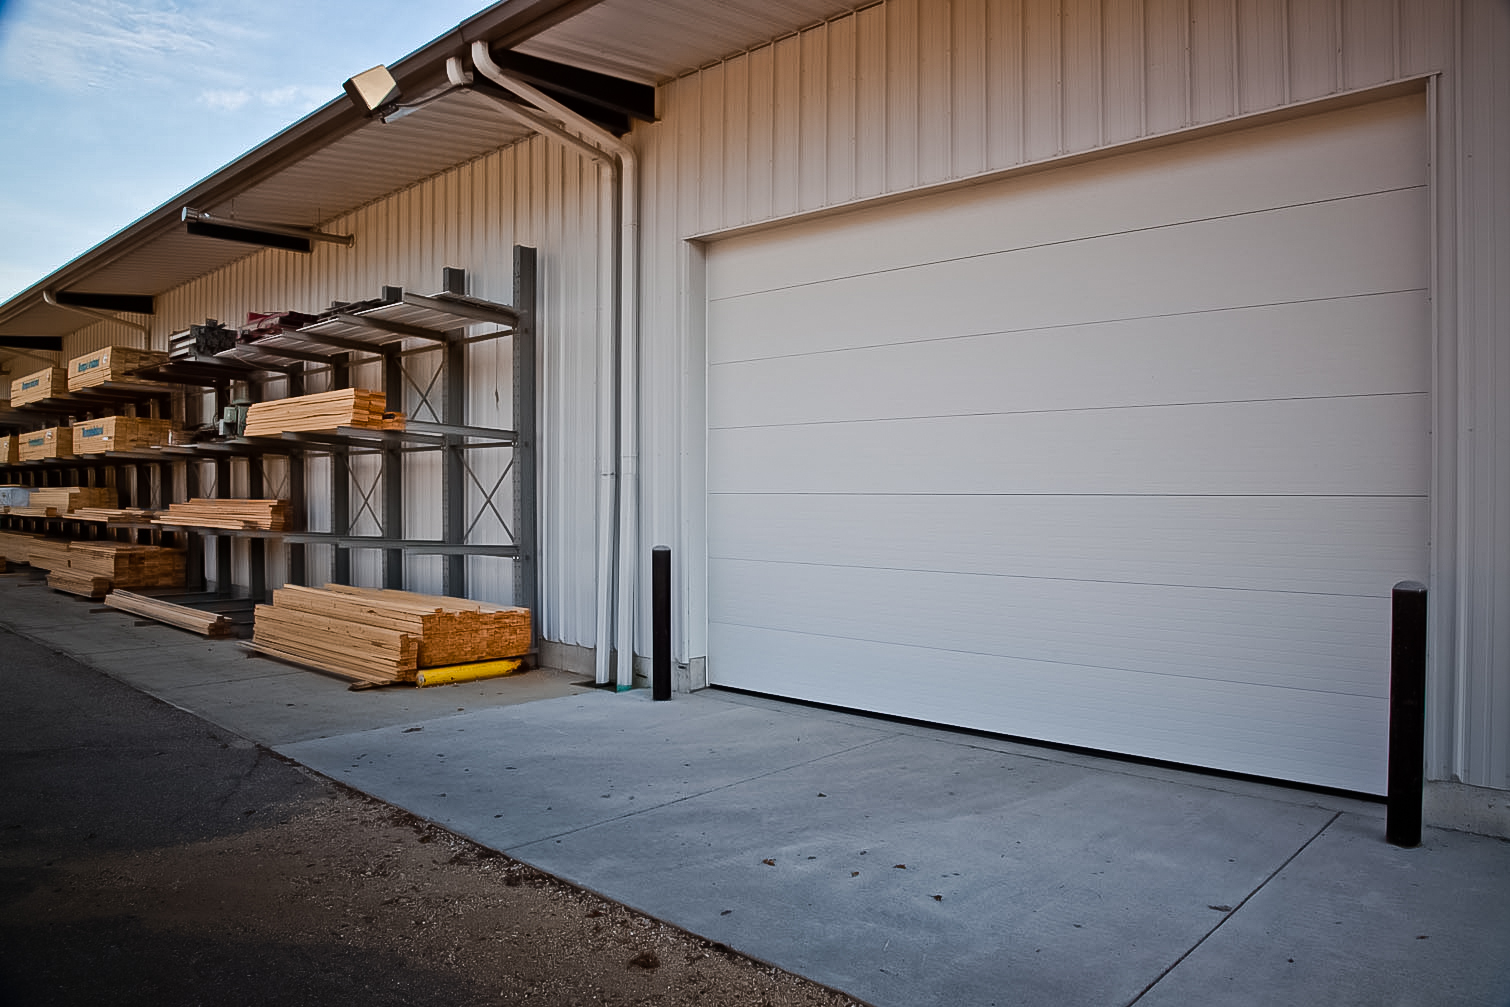 1007 #654937 Gfx/products/000116/IMG 2255.jpg pic Residential Garage Doors Direct 38211510